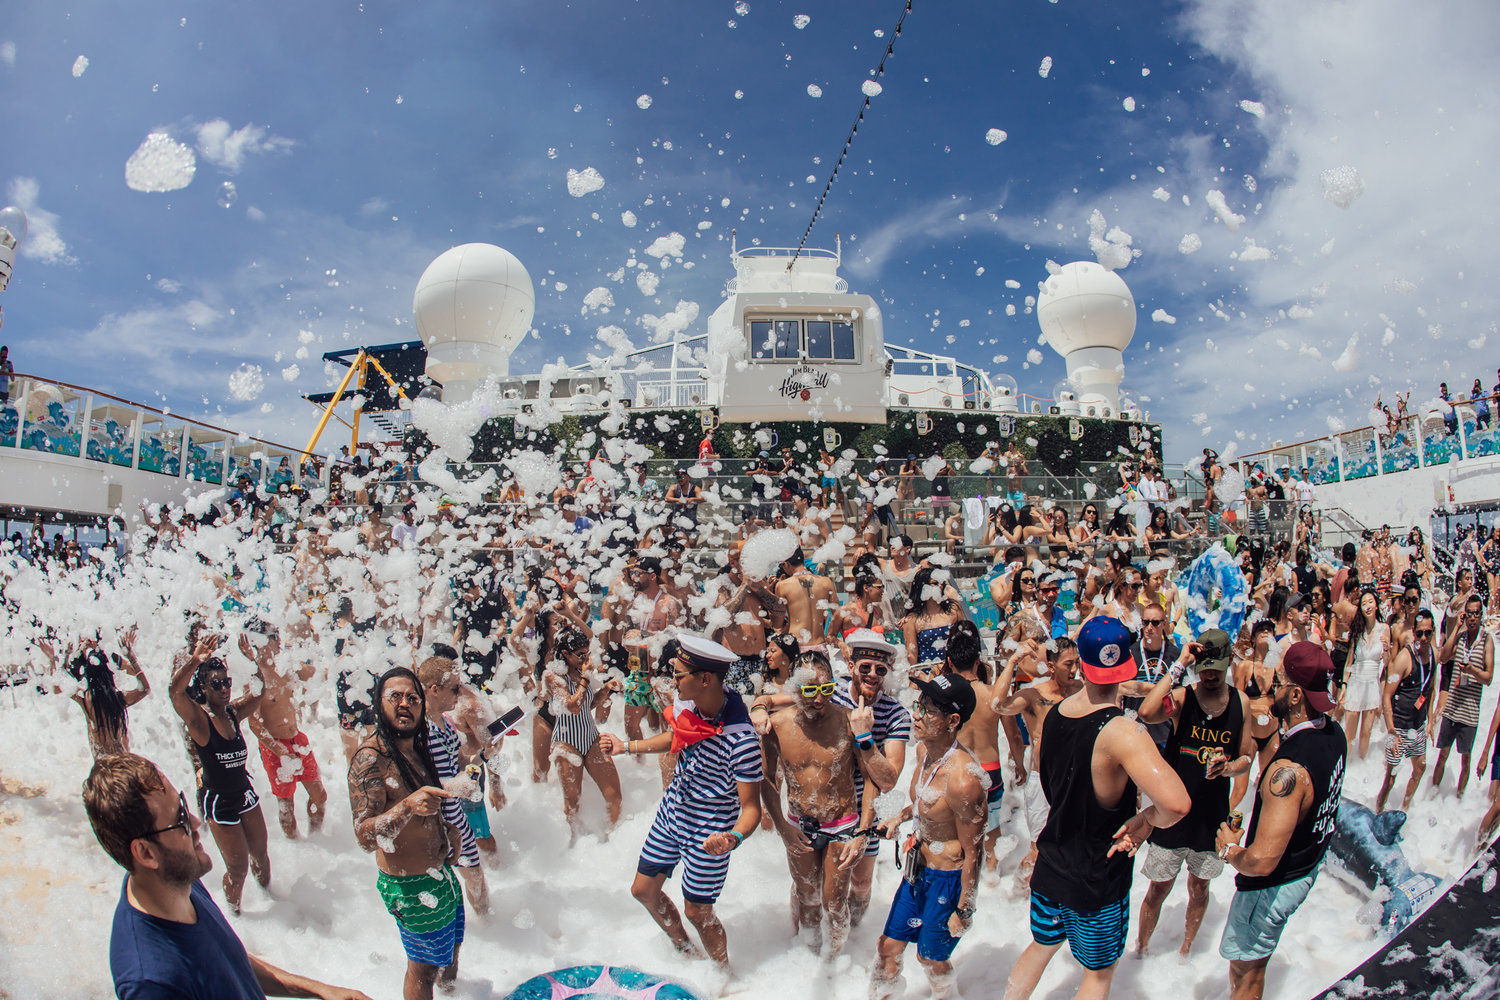 IT'S THE SHIP has proven to be more than just Asia's Largest Music Festival At Sea with activities ranging from musical beers to themed events such as the highly anticipated foam party